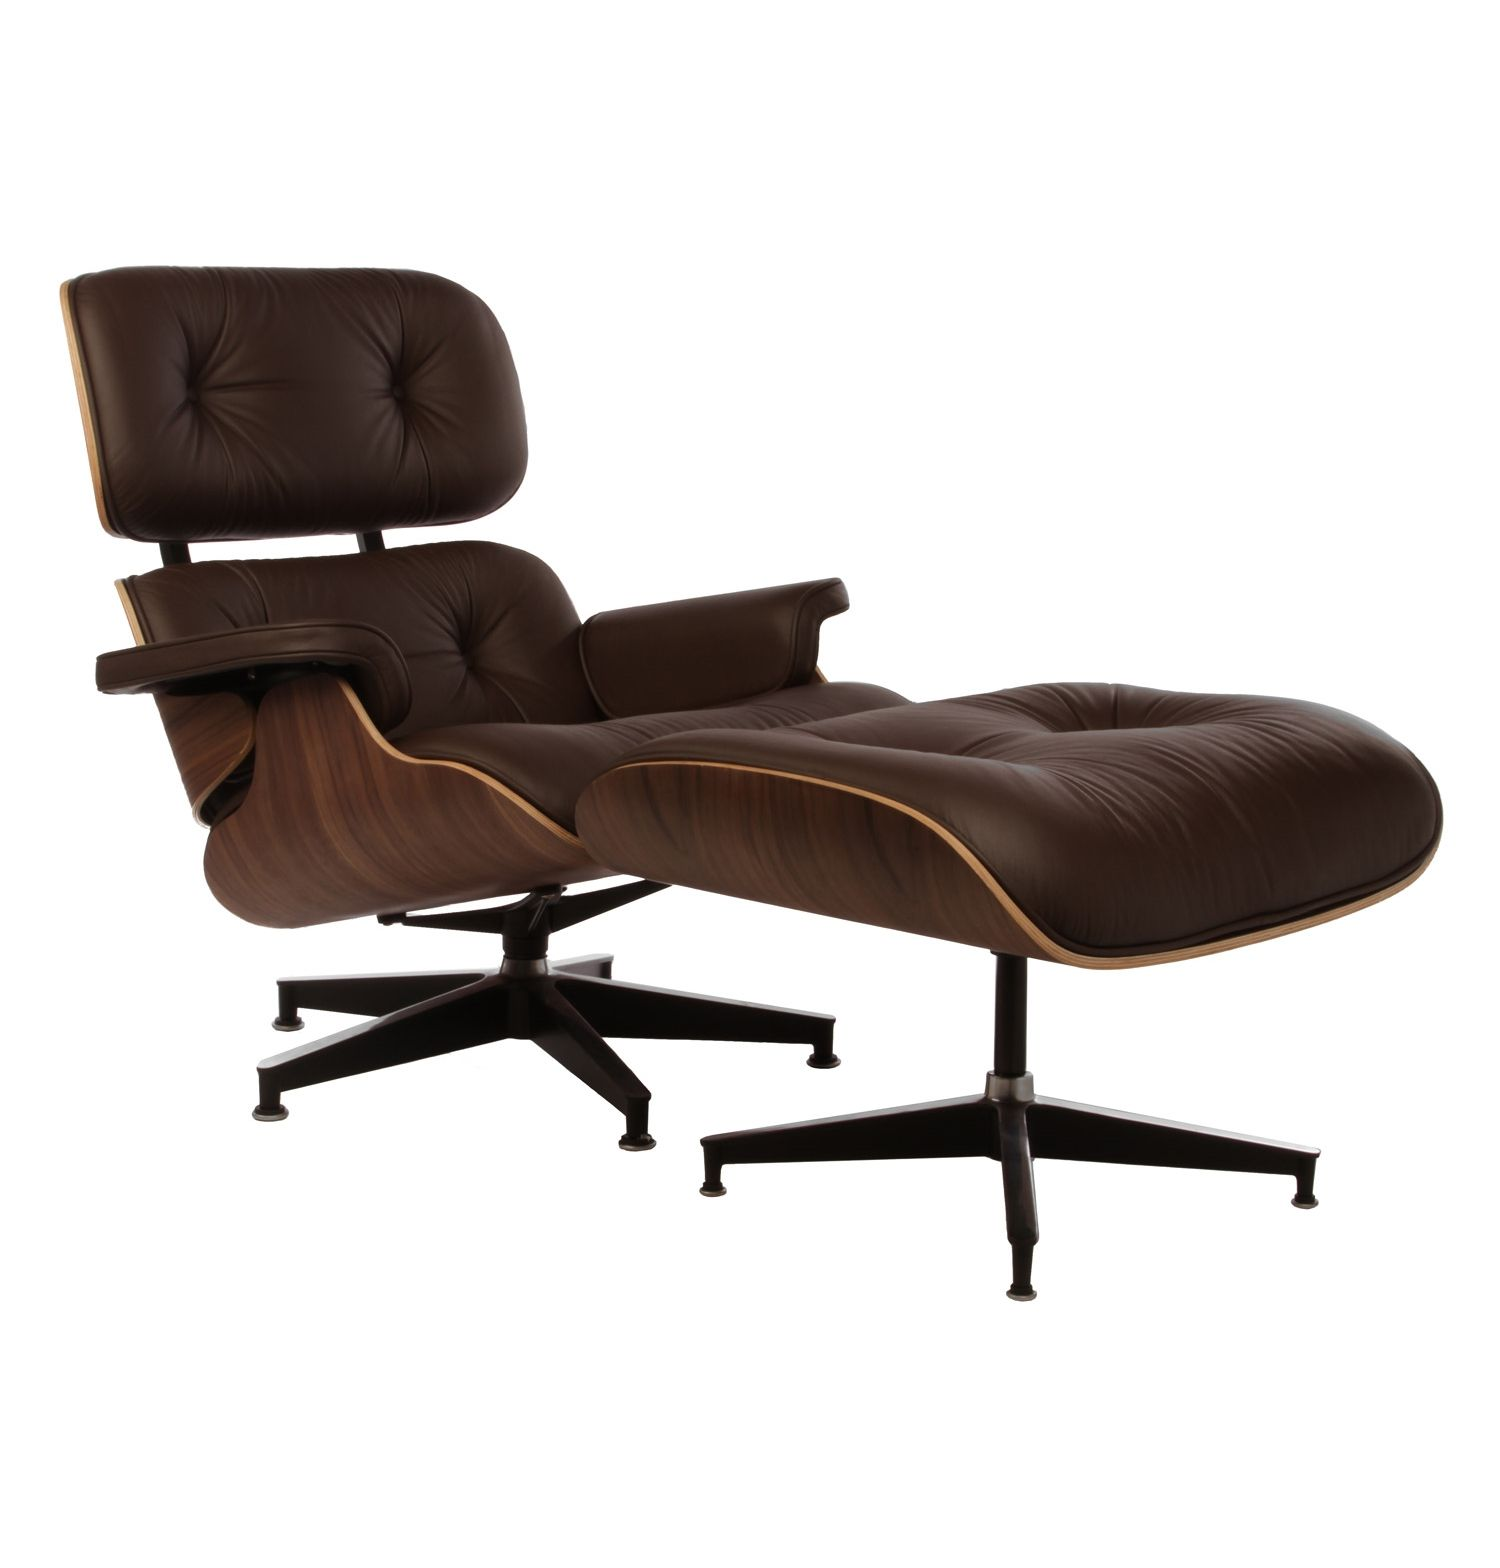 The Matt Blatt Replica Eames Lounge Chair And Ottoman Premium